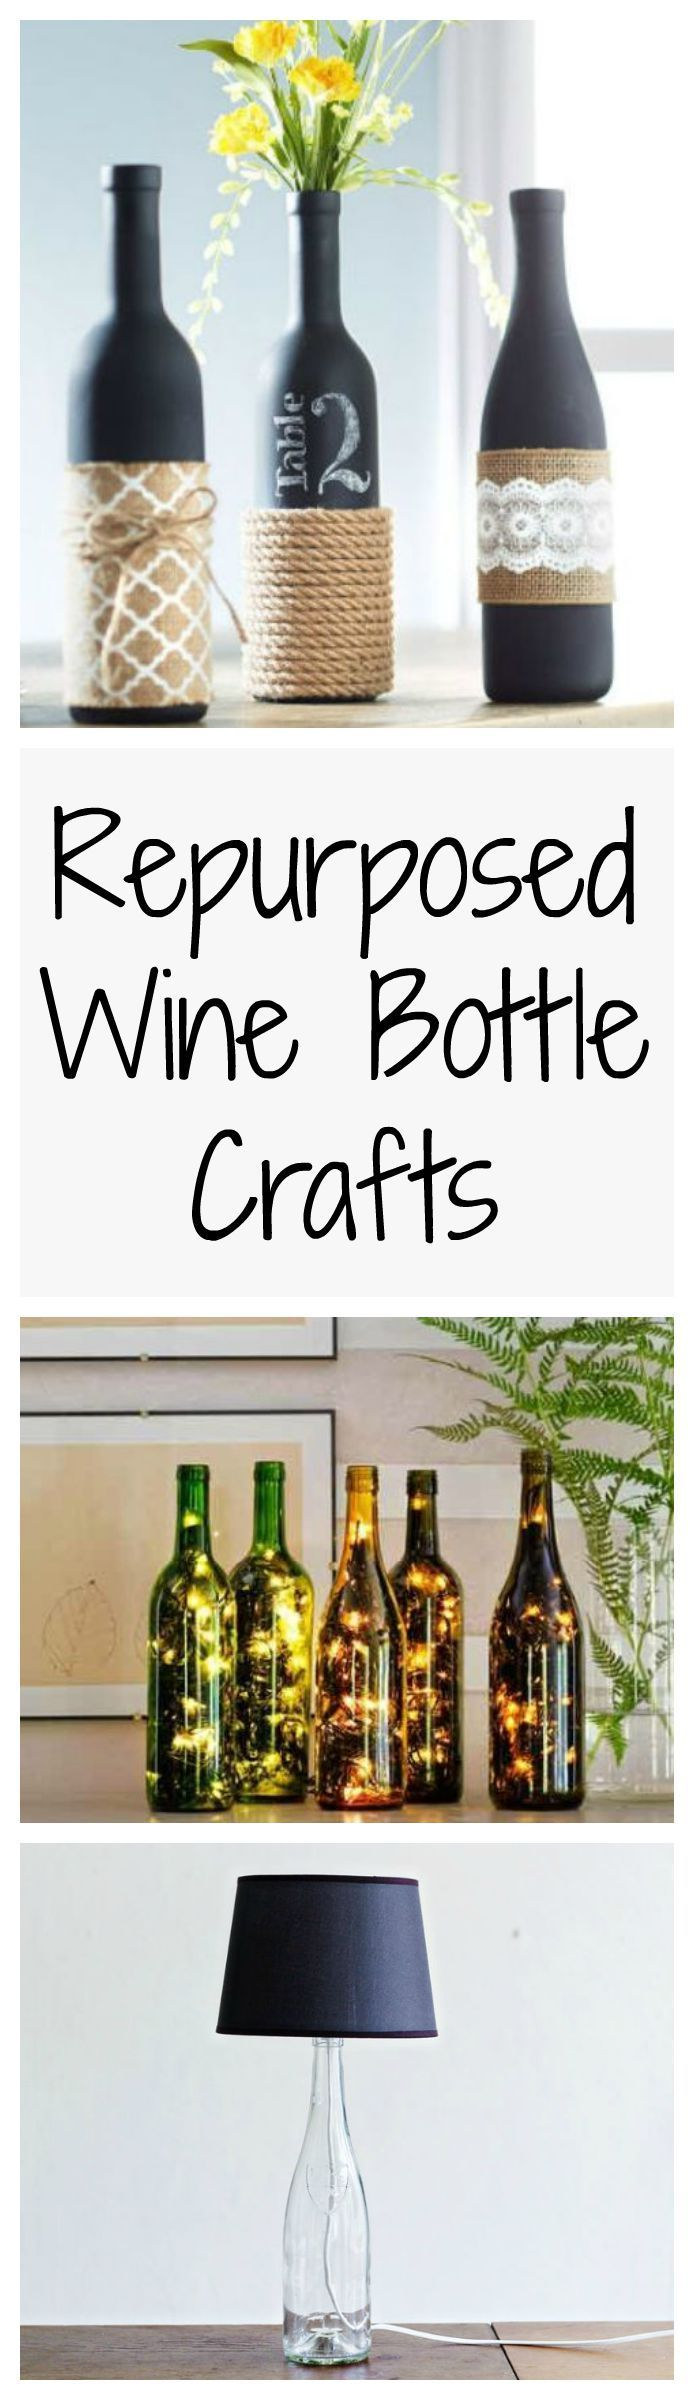 liquor bottle craft ideas best 25 wine bottle decorations ideas on 4872